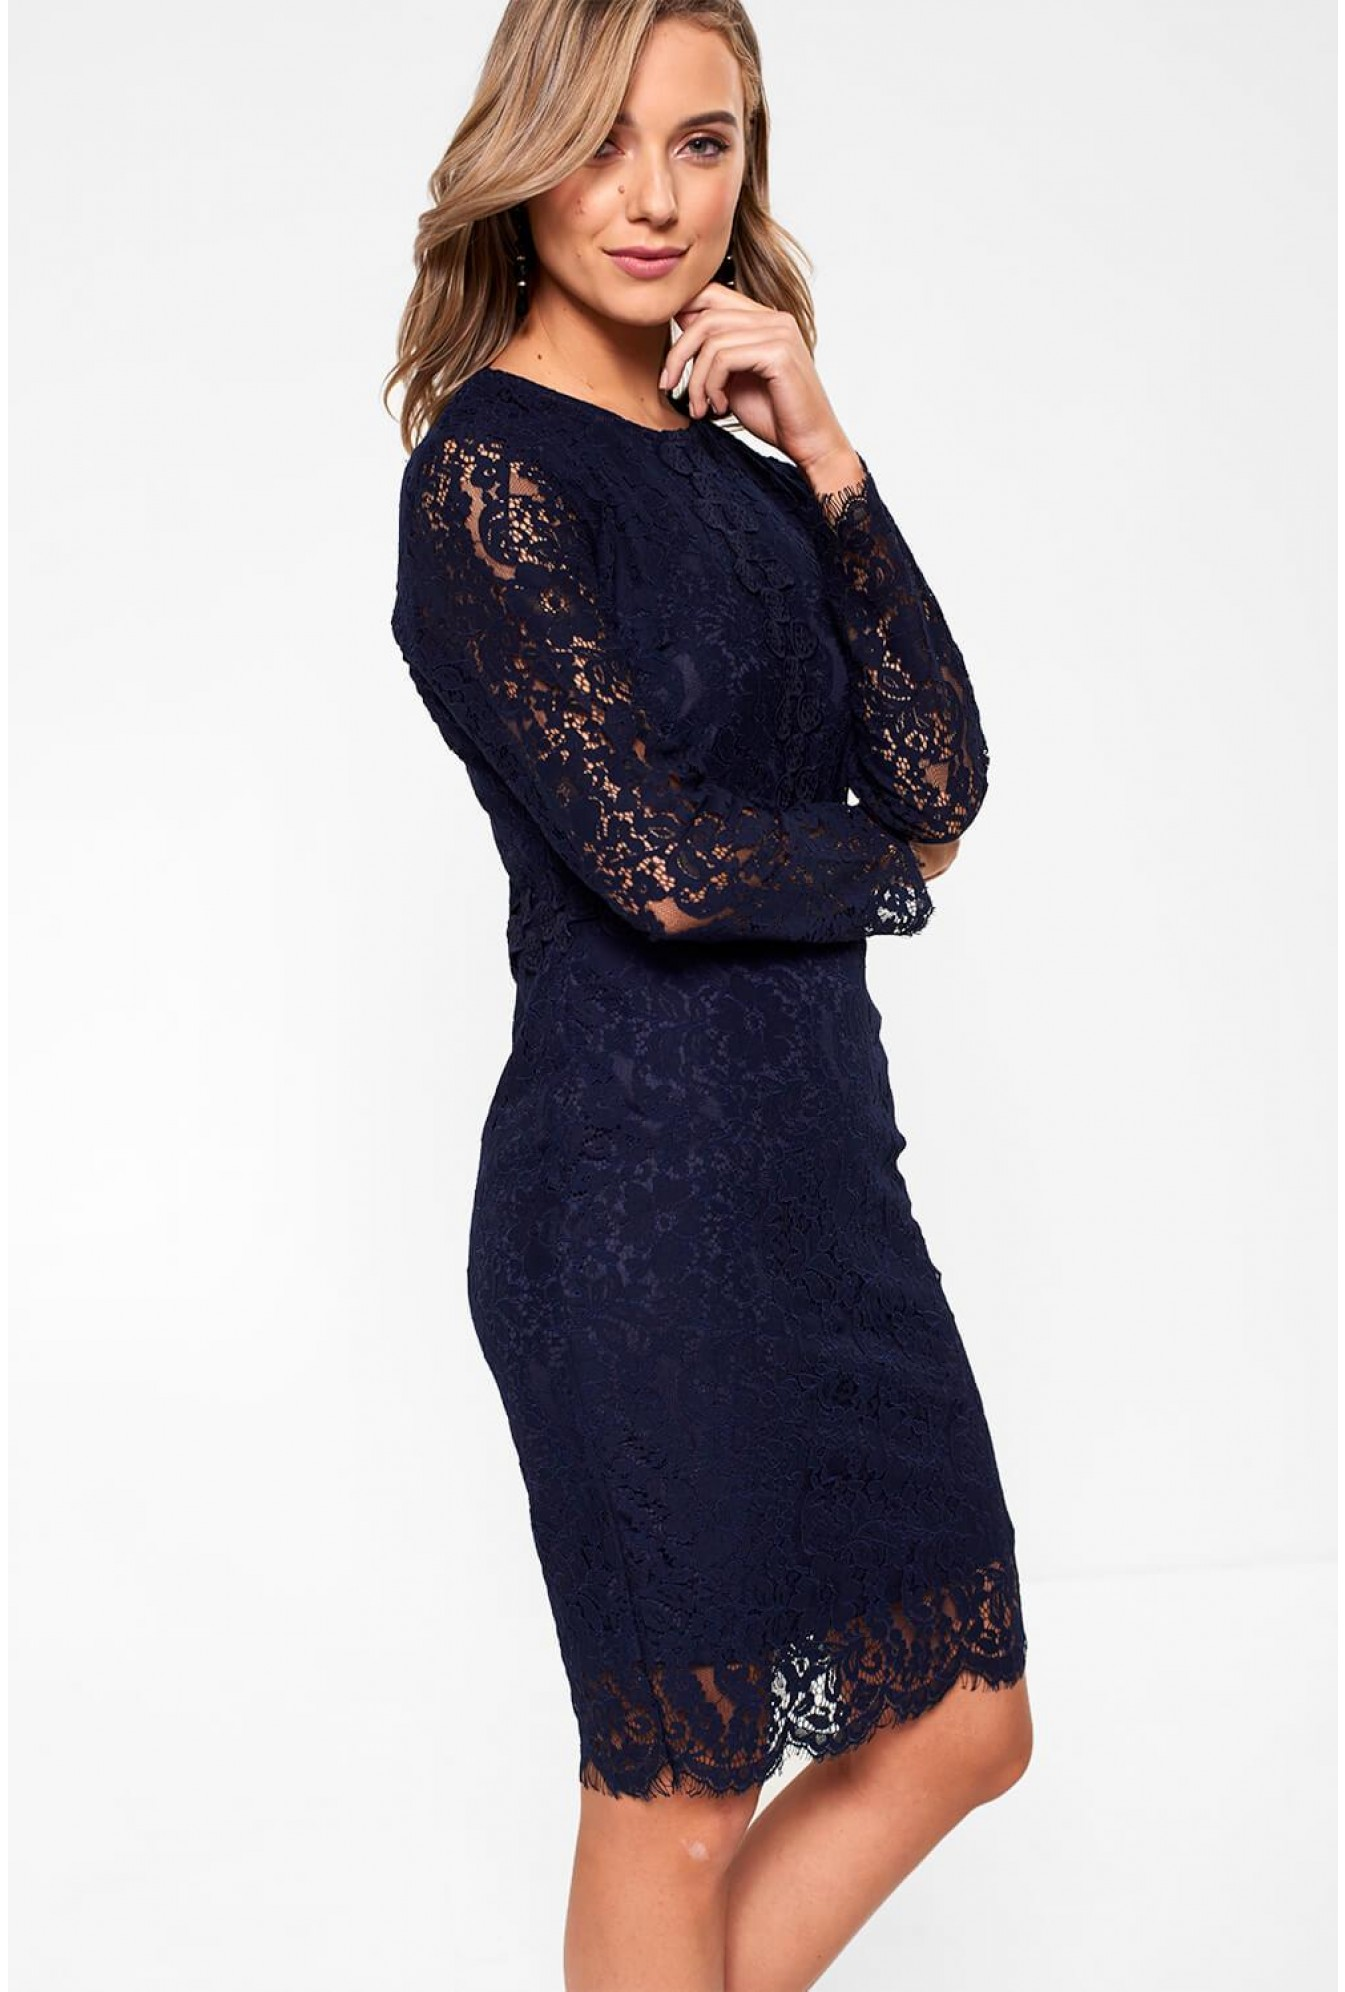 084527ff489 Marc Angelo Katie Long Sleeve Lace Dress in Navy | iCLOTHING